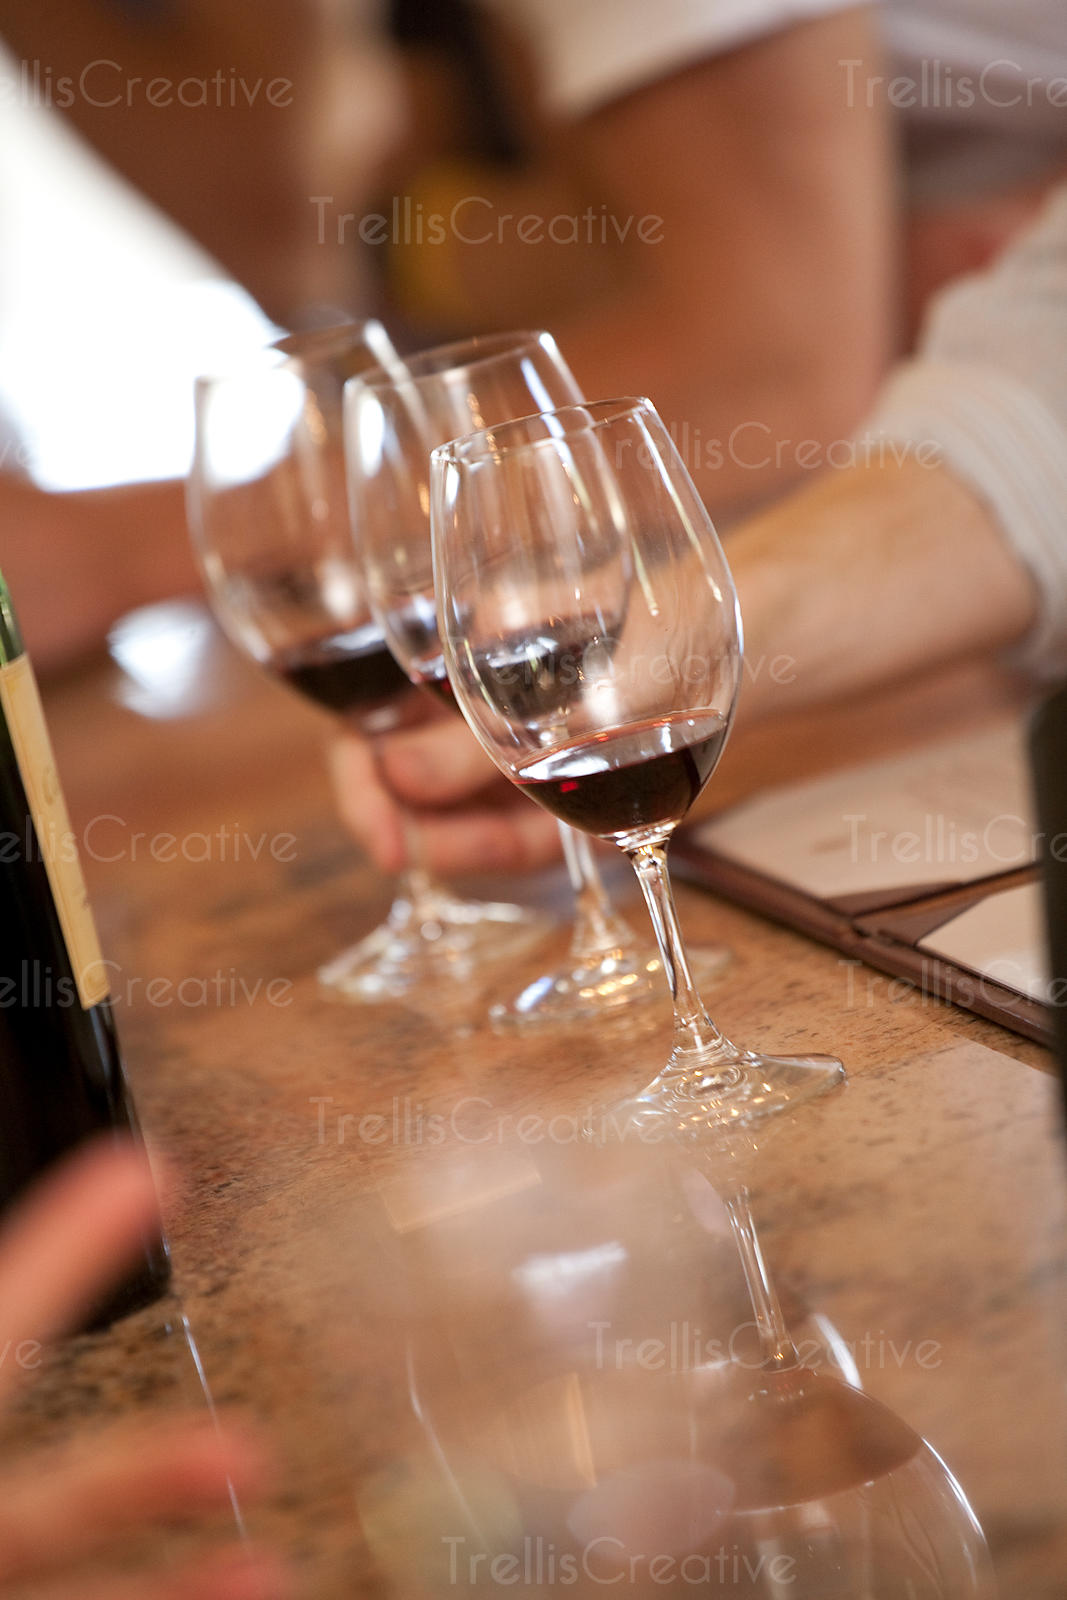 A man reaches for a glass of red wine at a winery tasting room